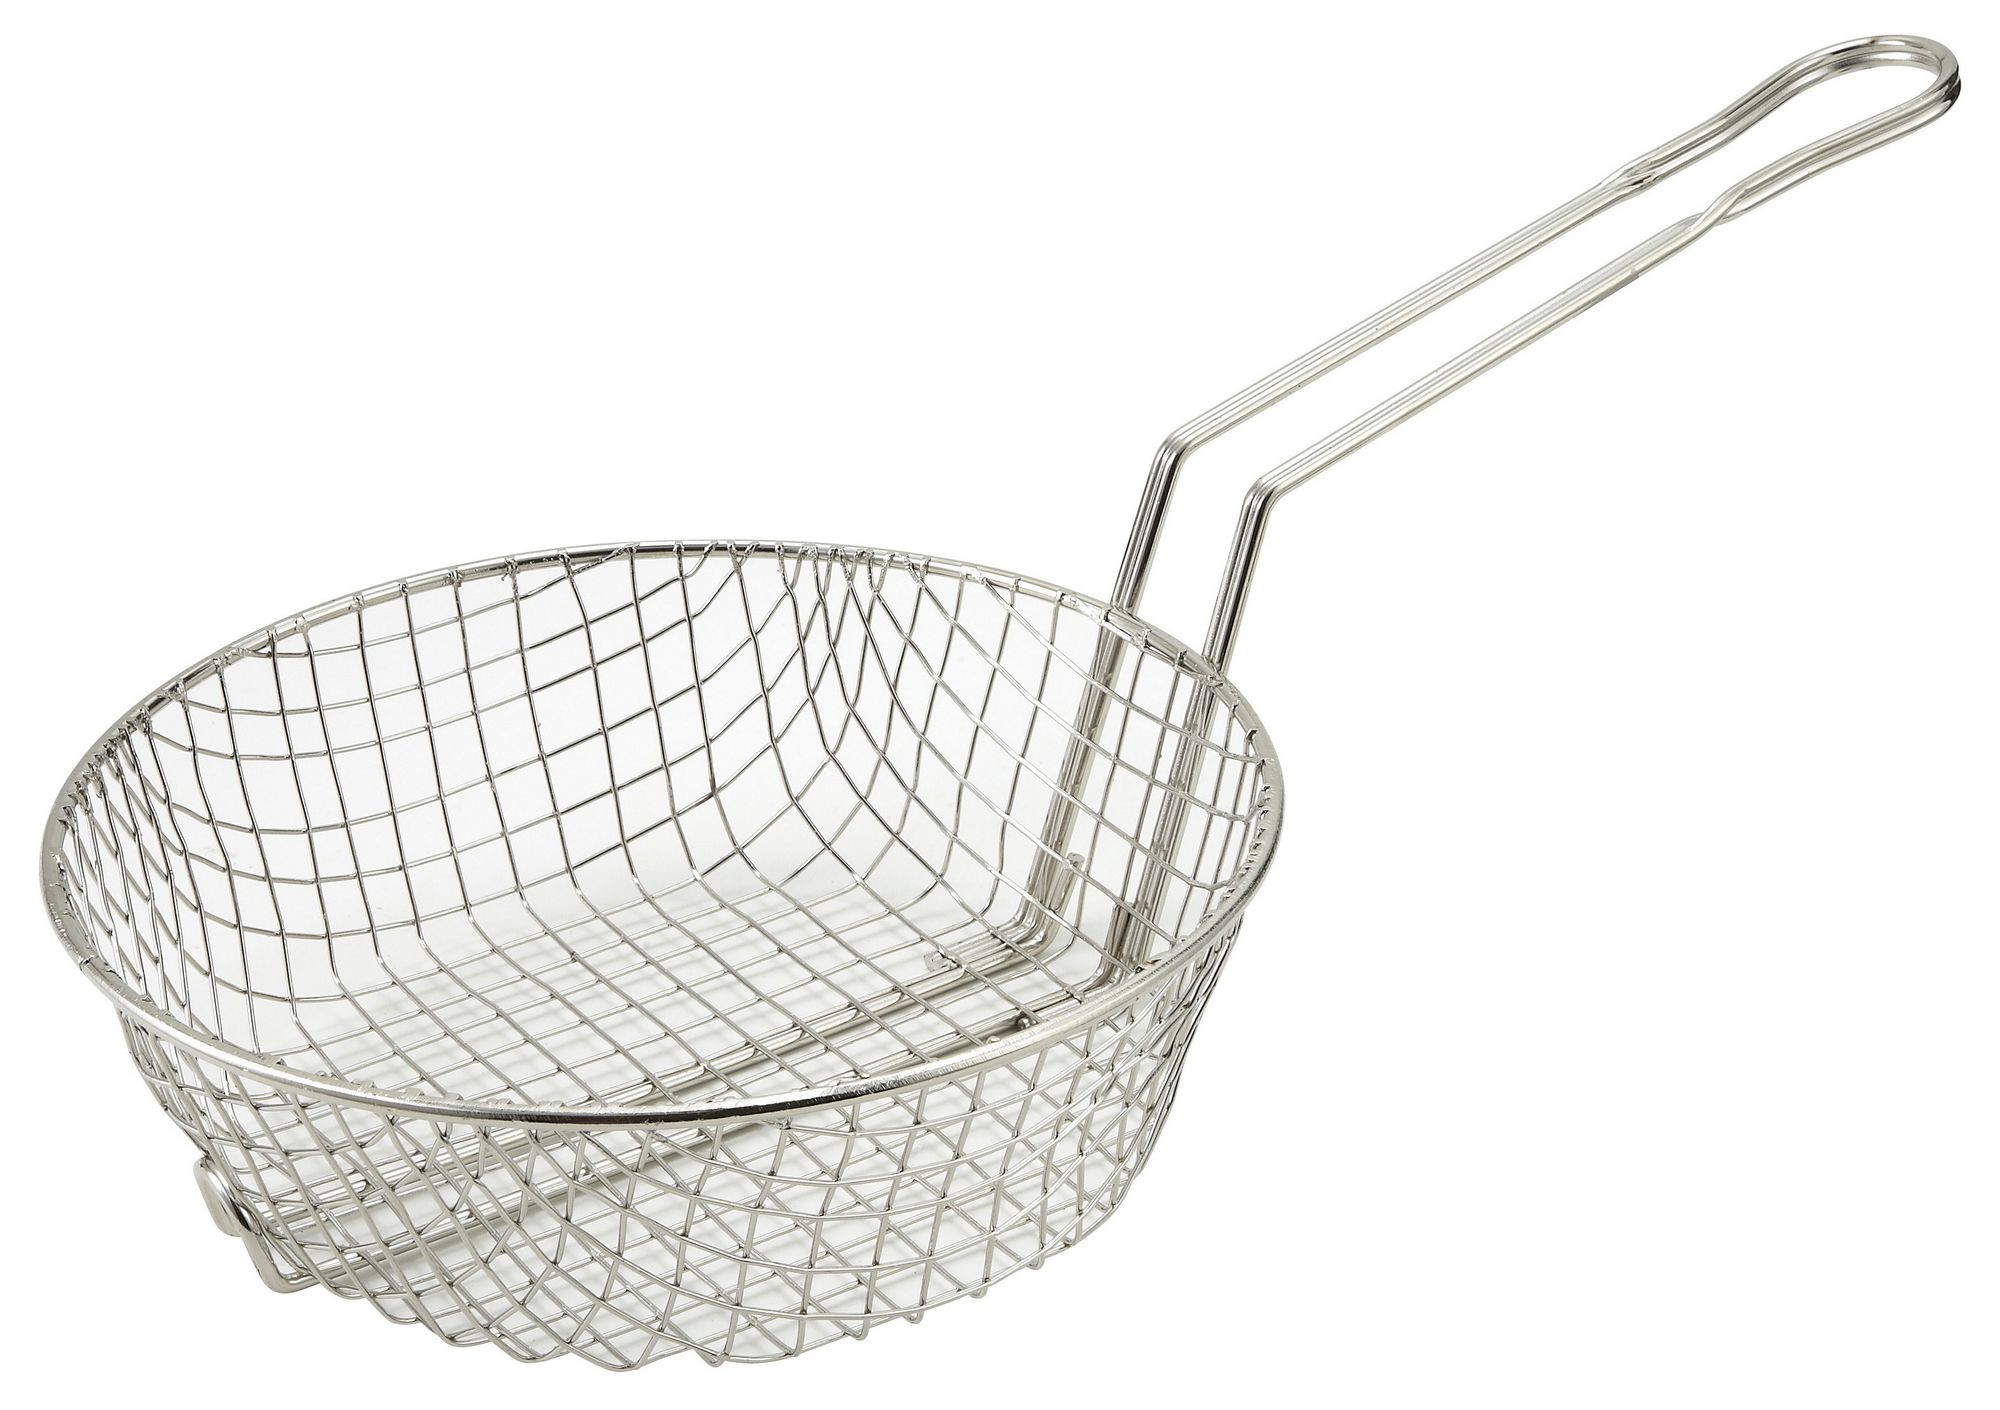 Coarse Mesh Culinary Basket - 12